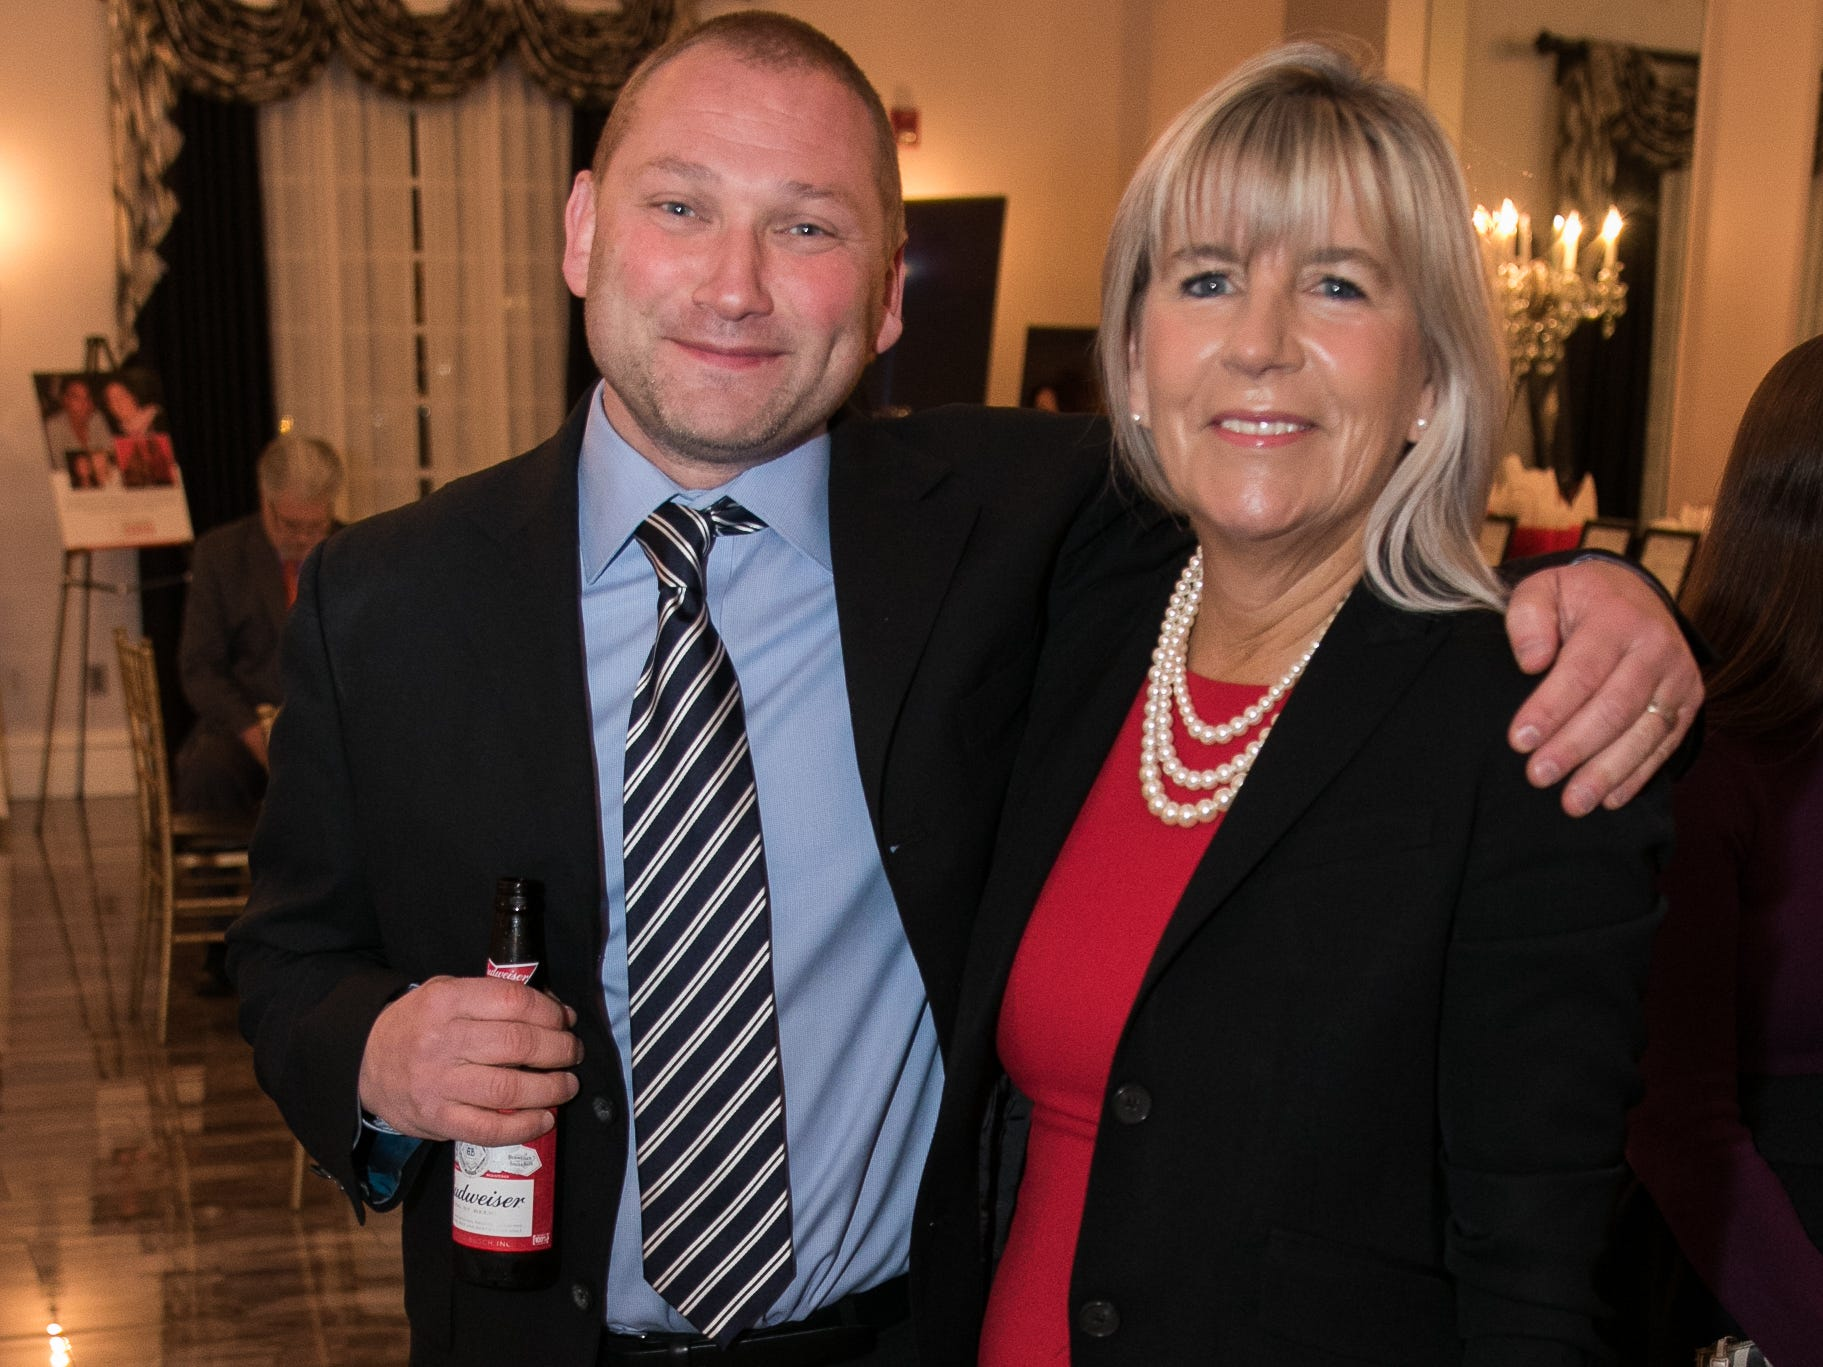 Larry Goldstein, Lynda Wolf. The Bergen Volunteer Center celebrated its 10th anniversary of the Bergen LEADS program at The Hearts of Gold Dinner and Auction at the Stony Hill Inn in Hackensack. 11/08/2018